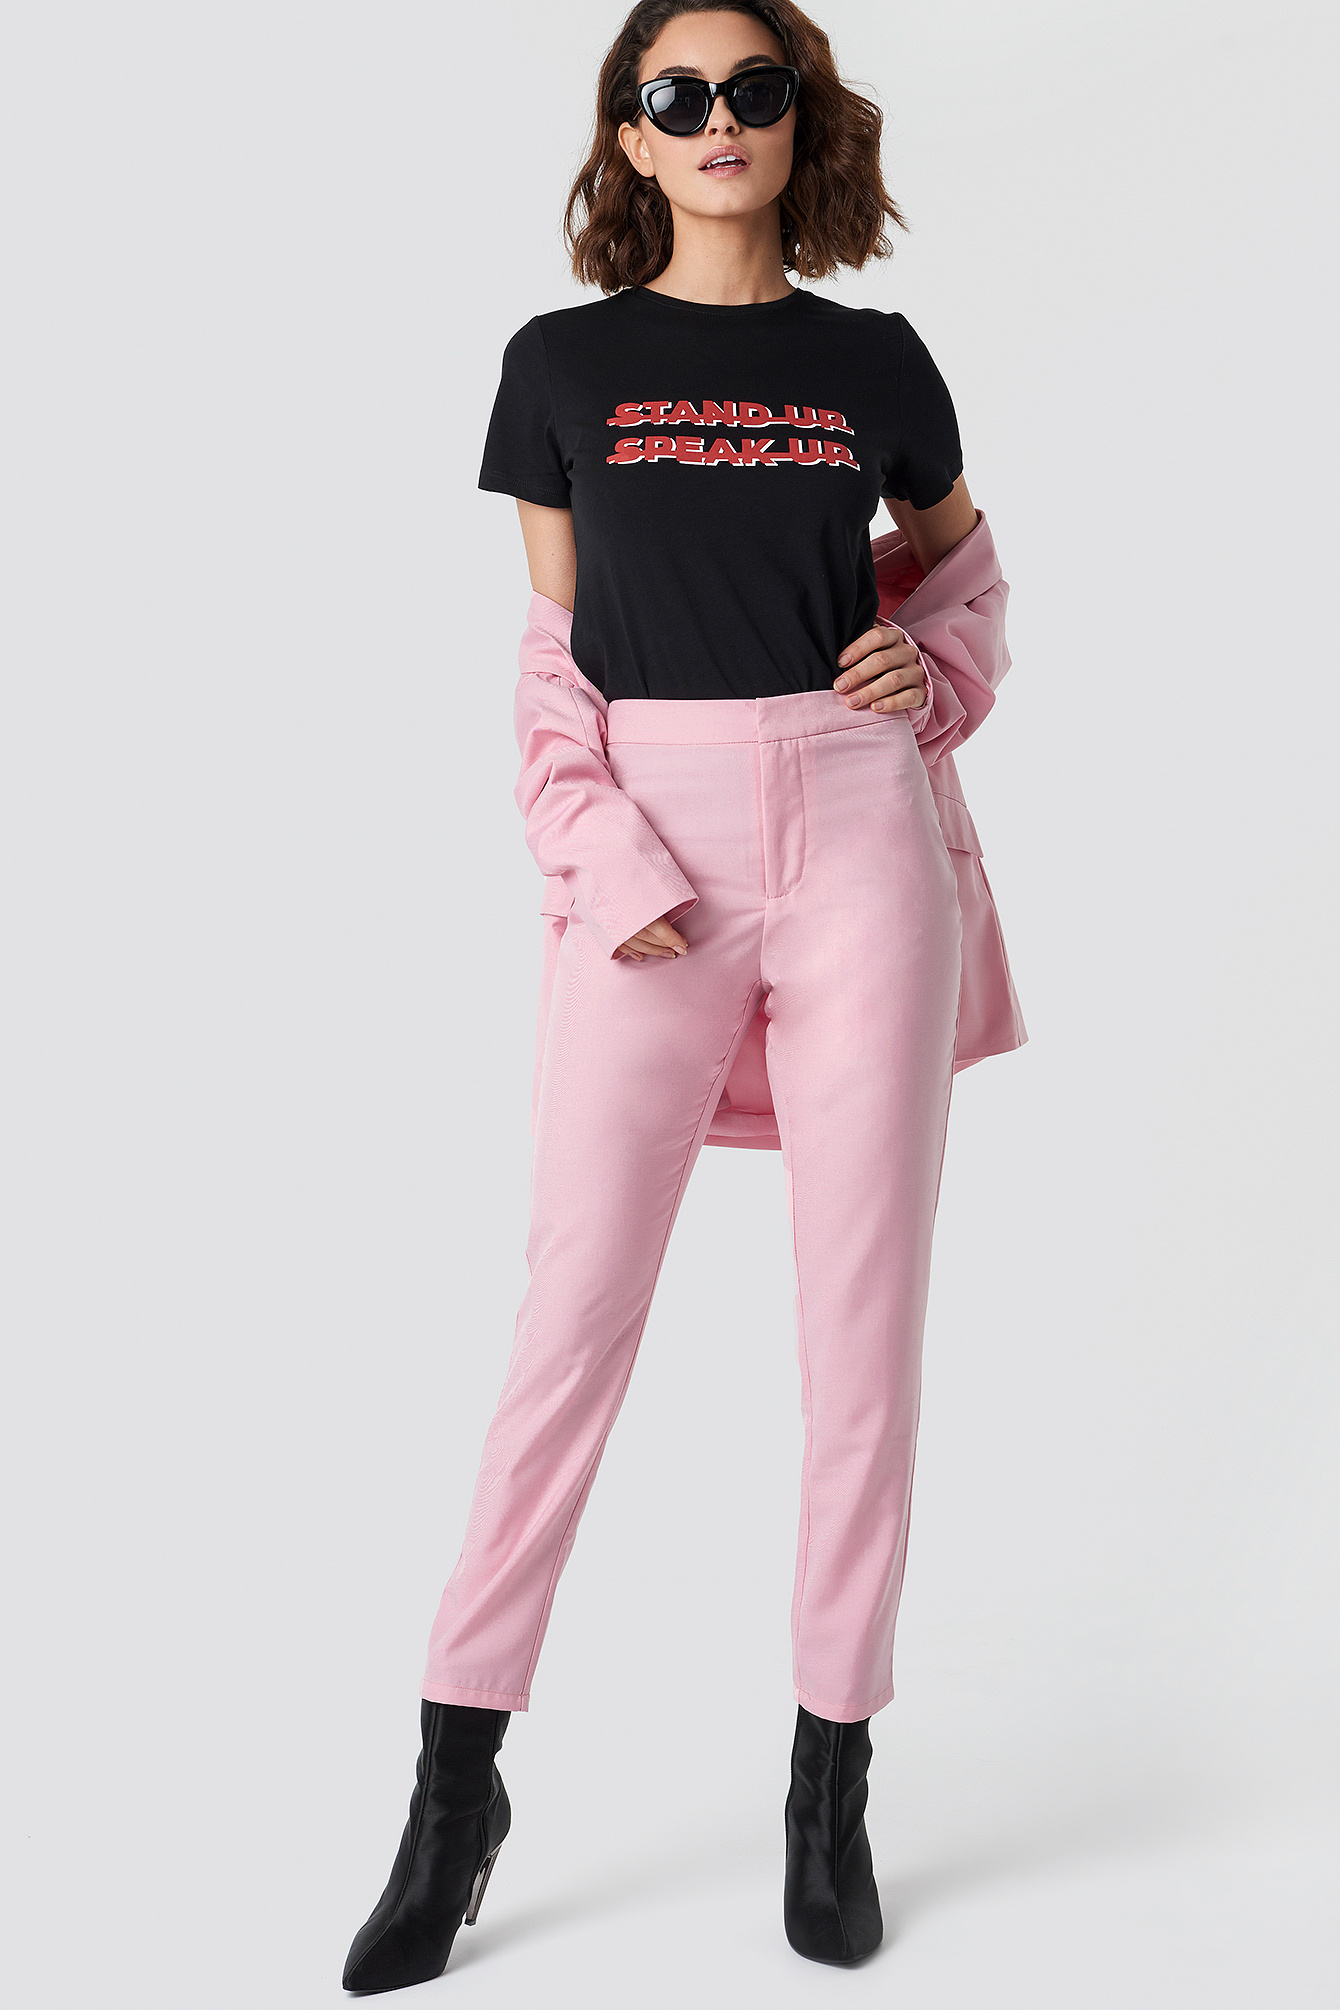 NA KD Ladies crop top short shirt with stand up collar turtleneck pink